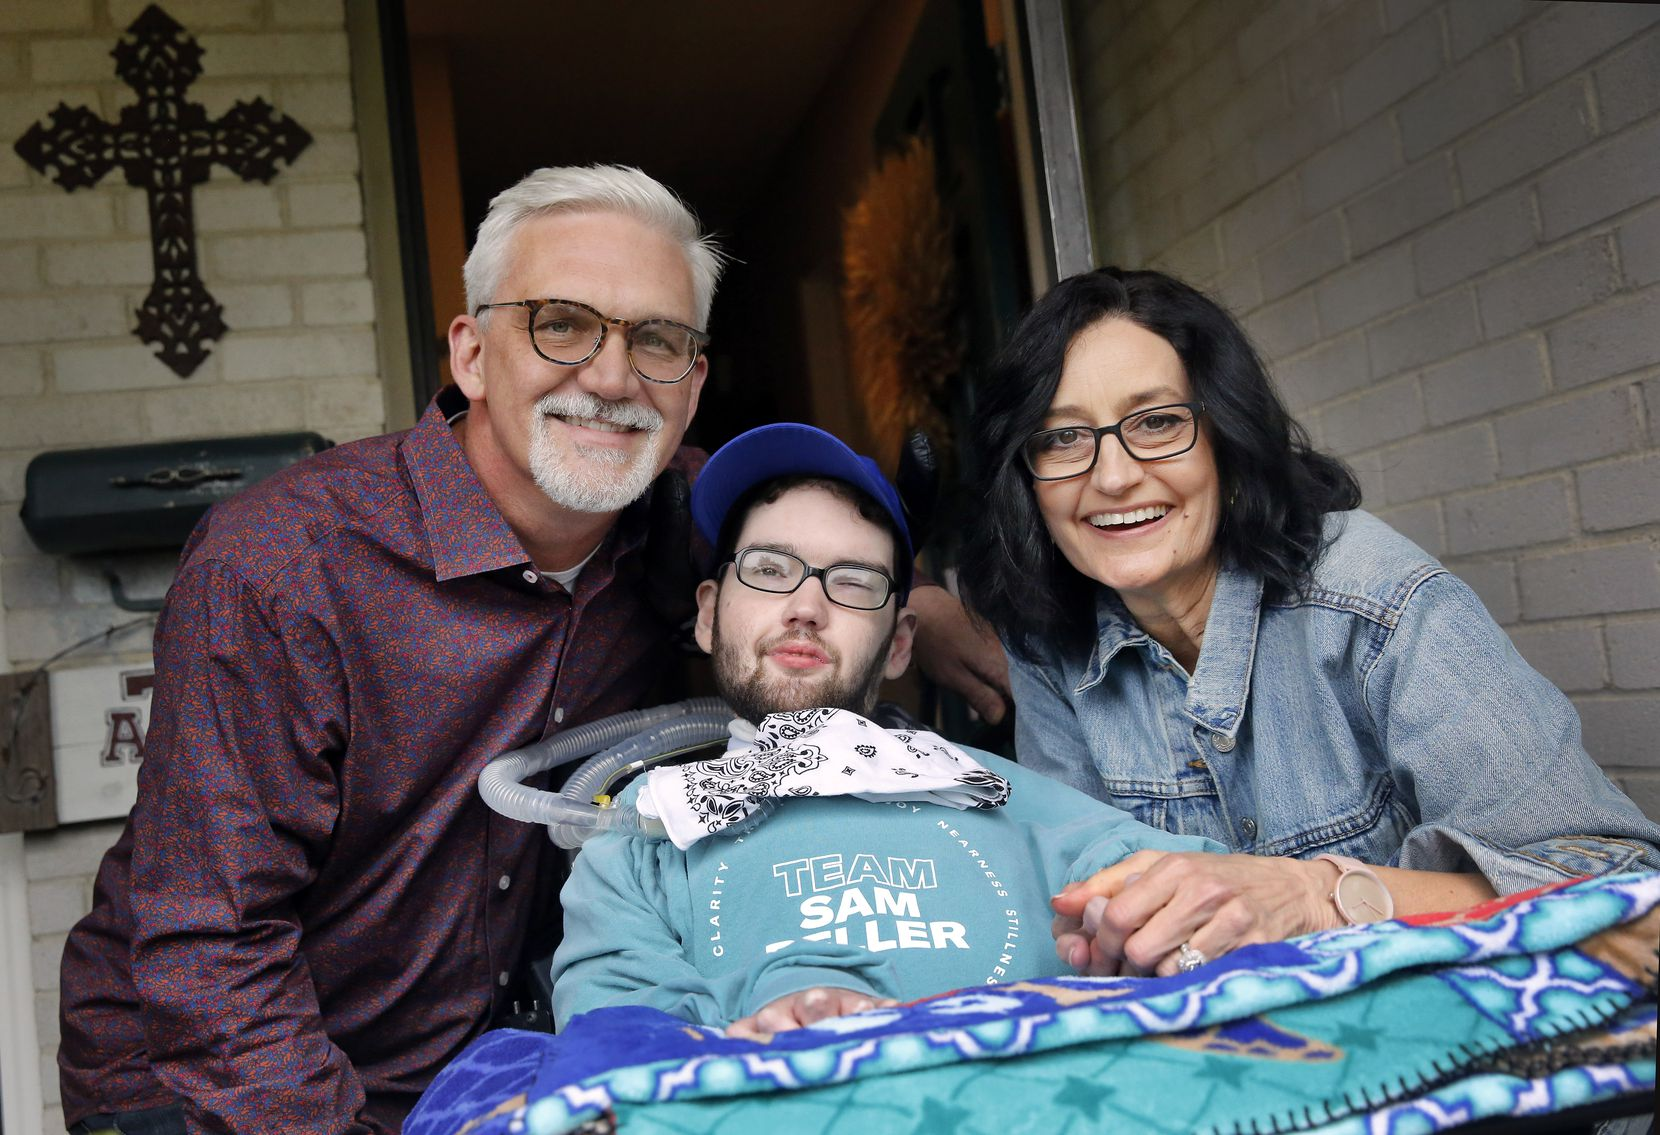 Sam Beller, with parents Kelly and David, was 7 years old when he first required a ventilator to breathe. Now 20 years later, Sam lives a healthy life with a home ventilator, 24/7 nursing care and physical therapy.